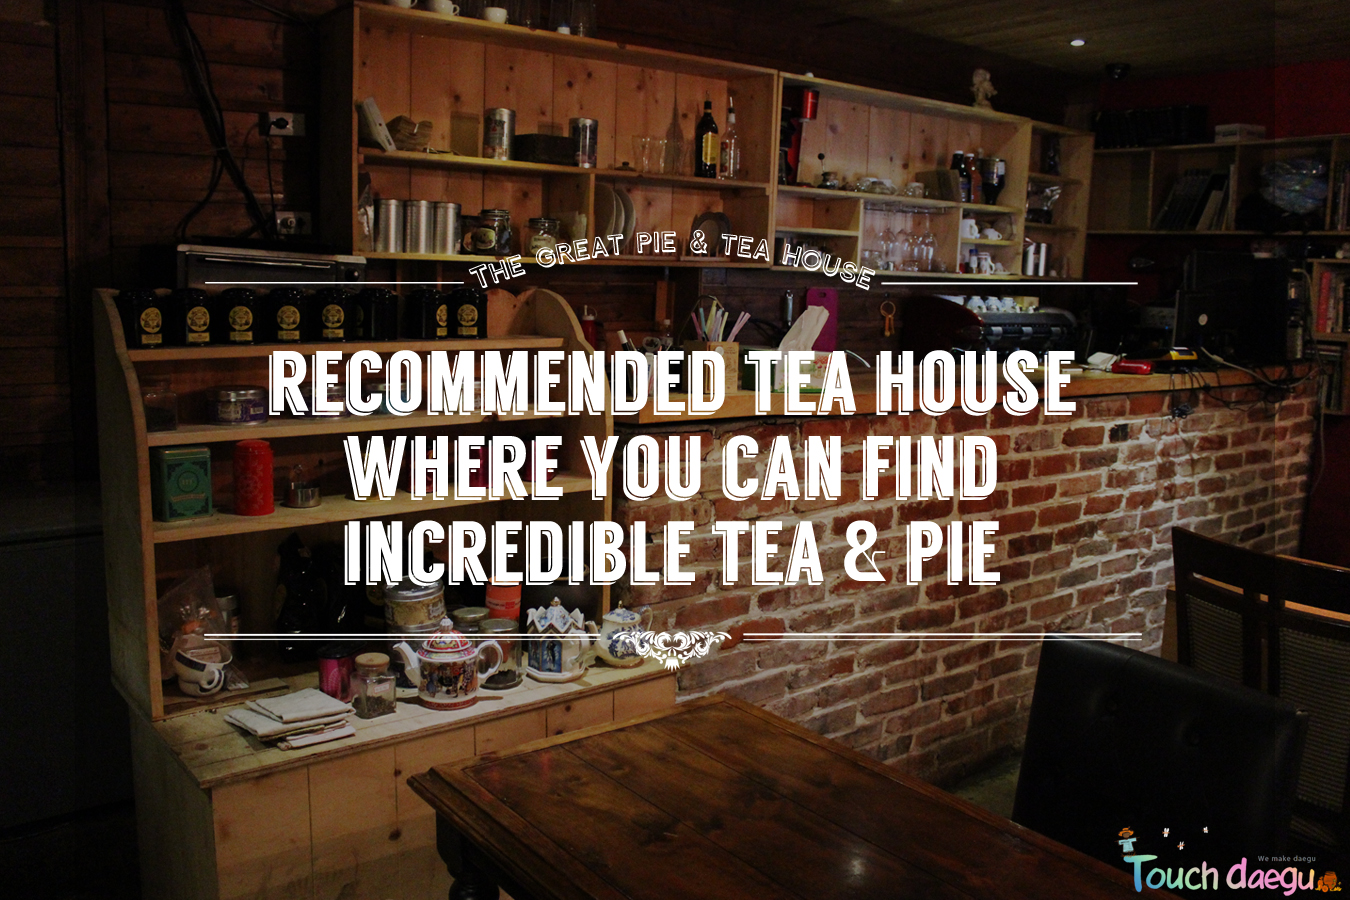 Cafe Doyo─the recommended pie shop and tea house in Daegu